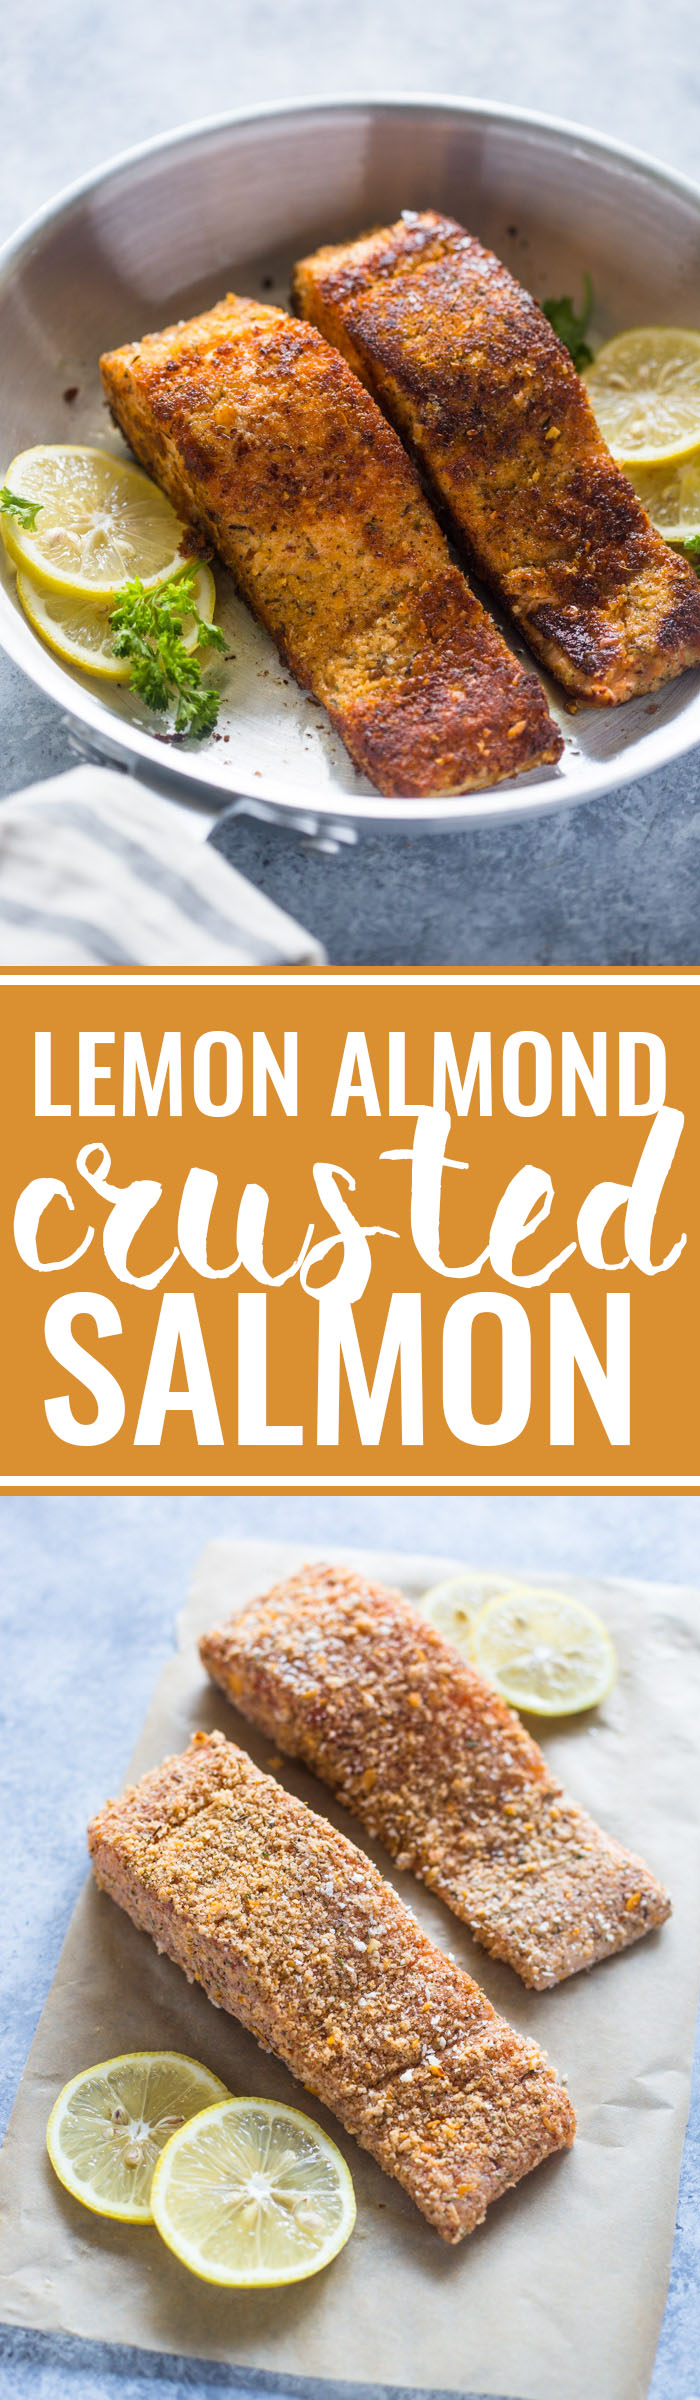 15 minute Crunchy Lemon Almond Crusted Salmon